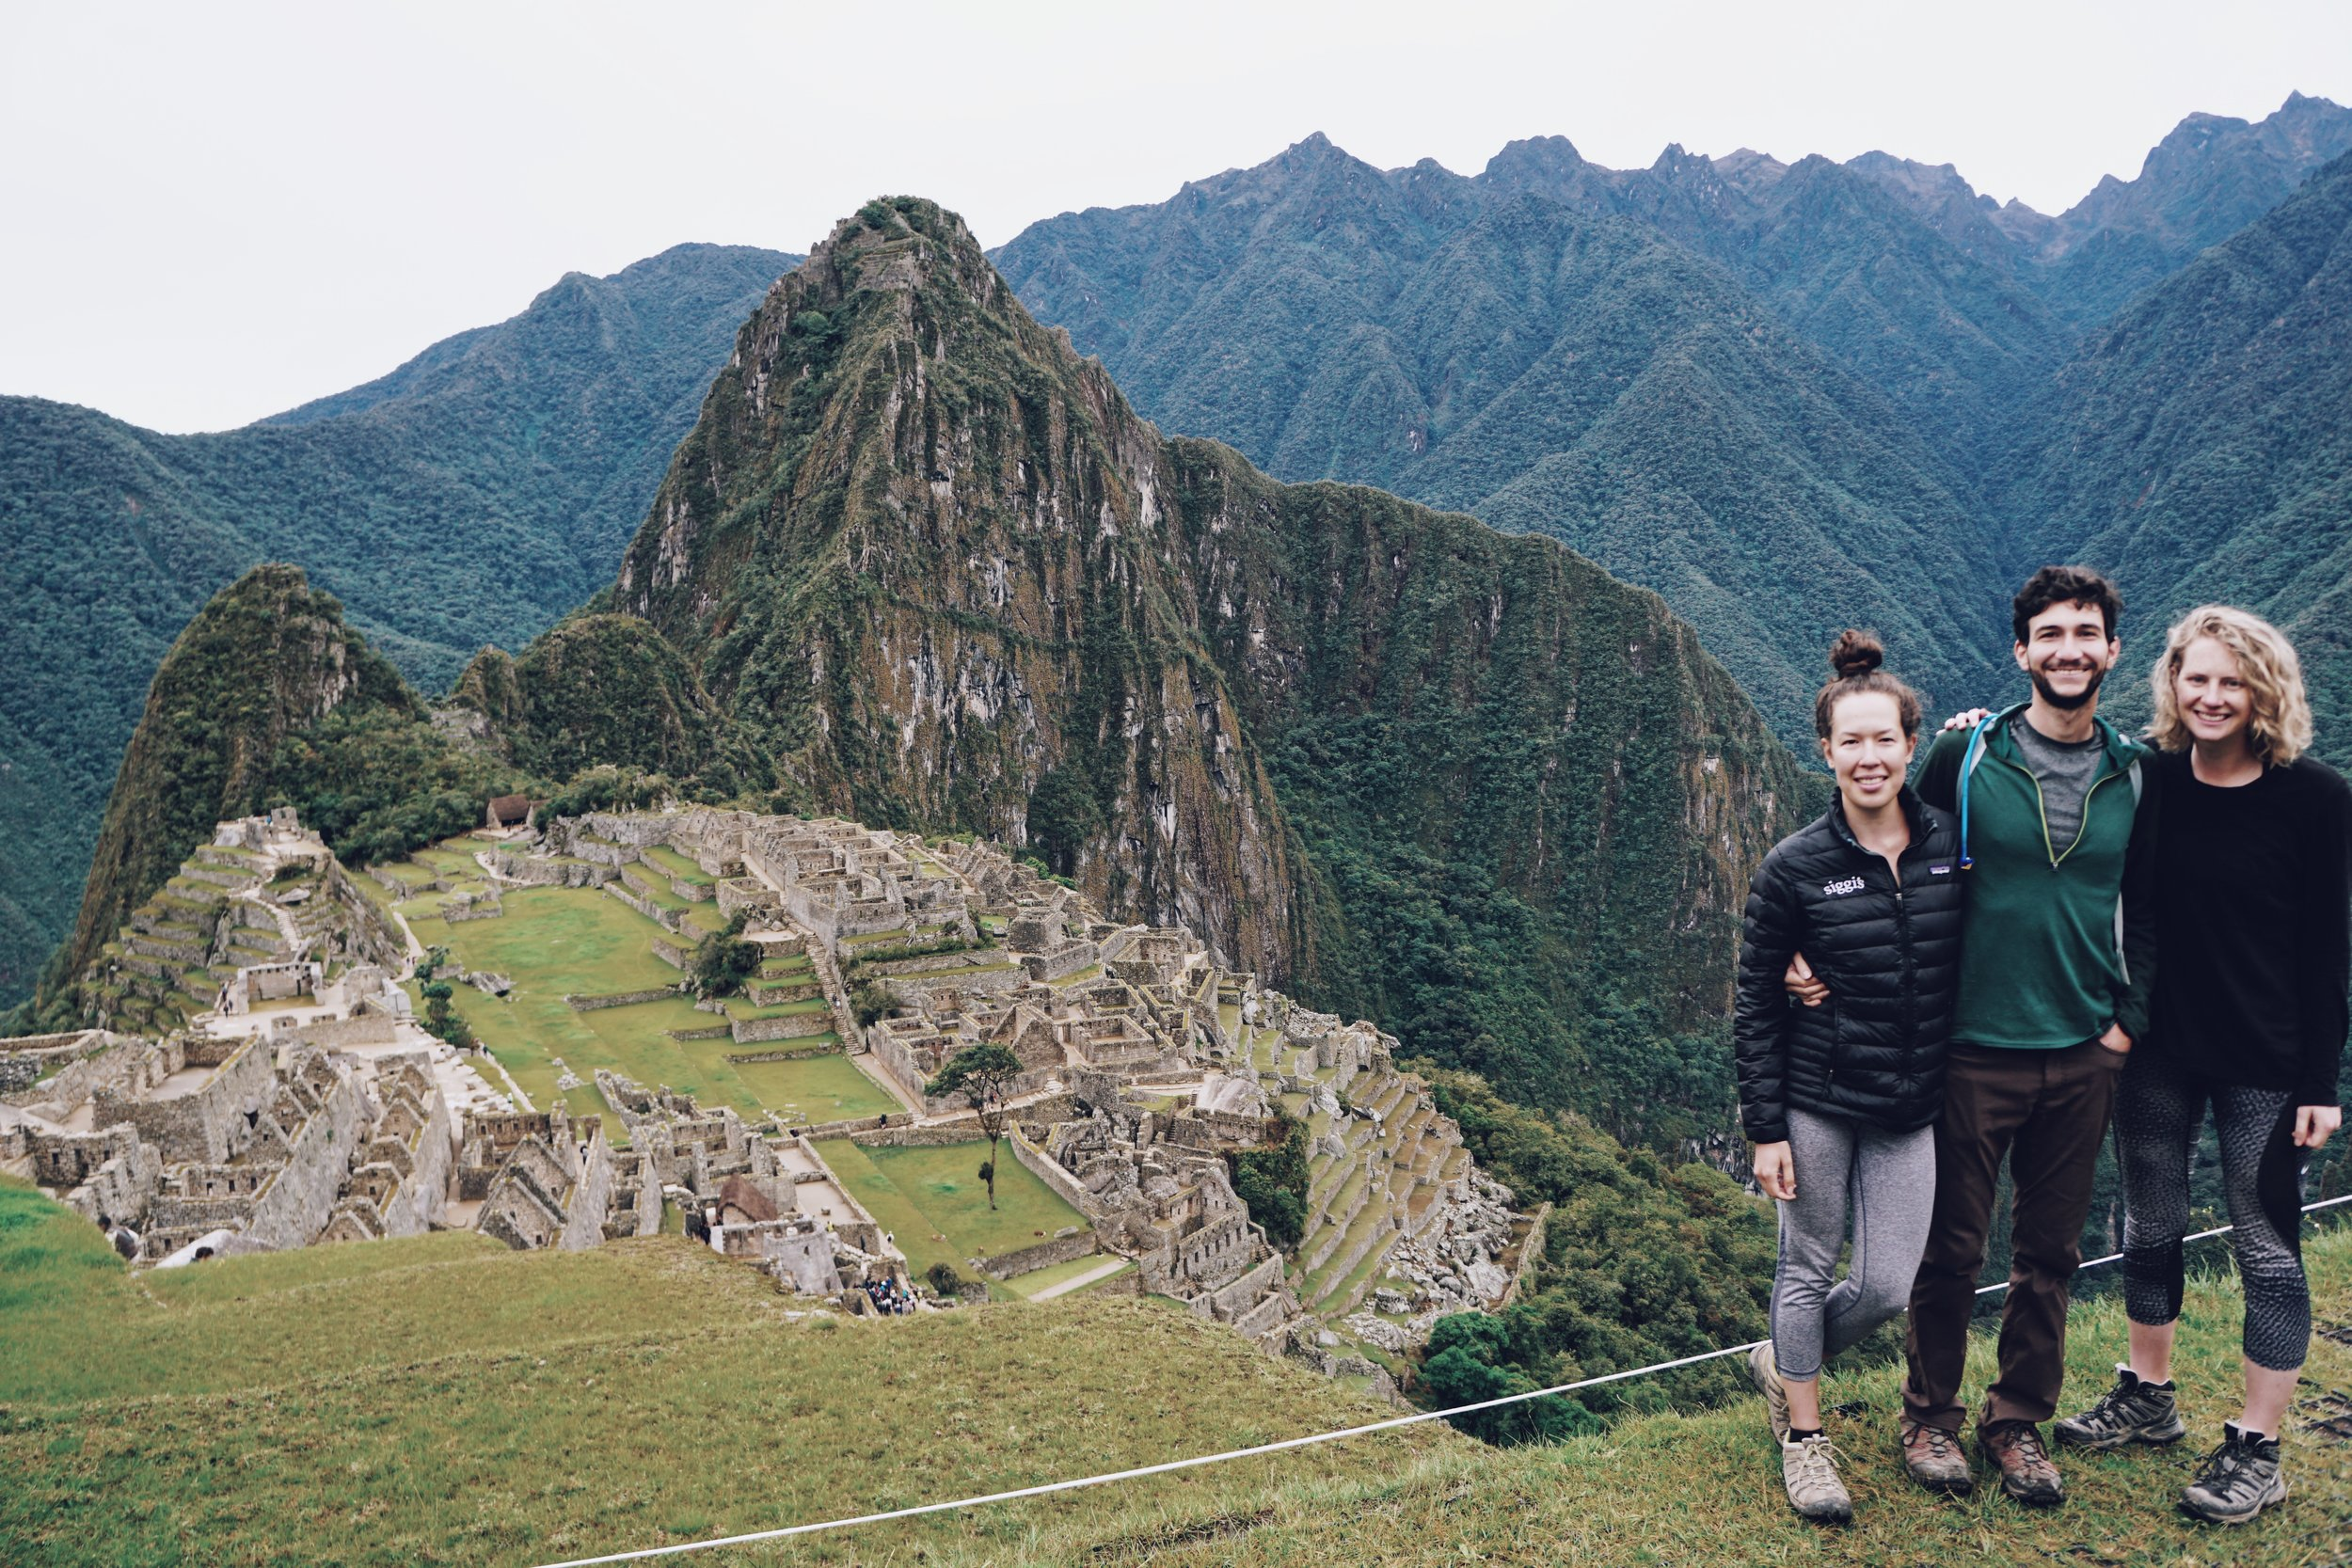 We made it! The final climb to visit Machu Picchu.